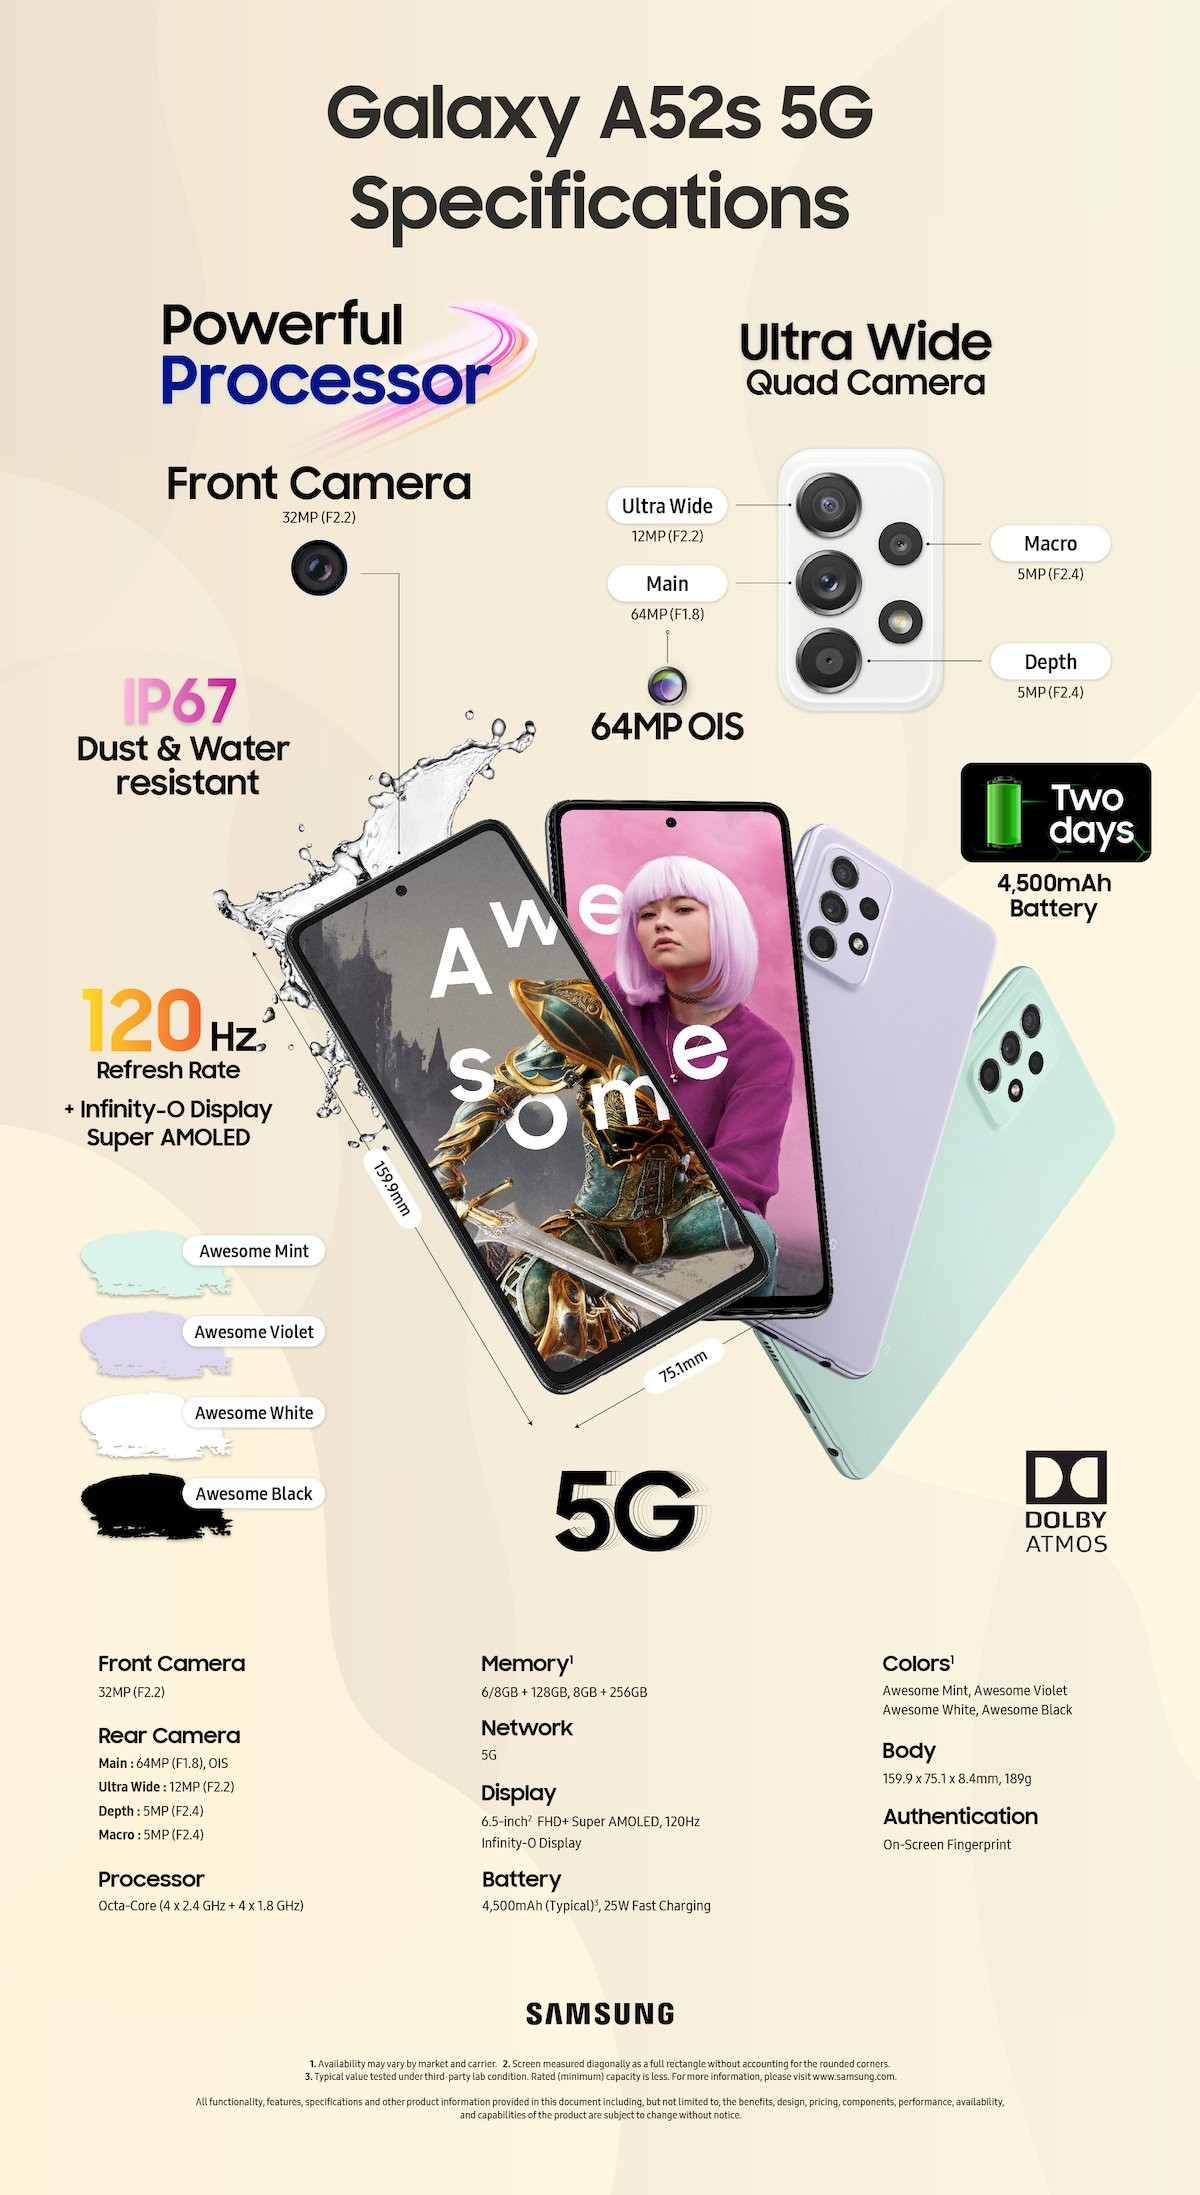 Samsung Galaxy A52s 5G unveiled with Snapdragon 778G chipset, 25W charger